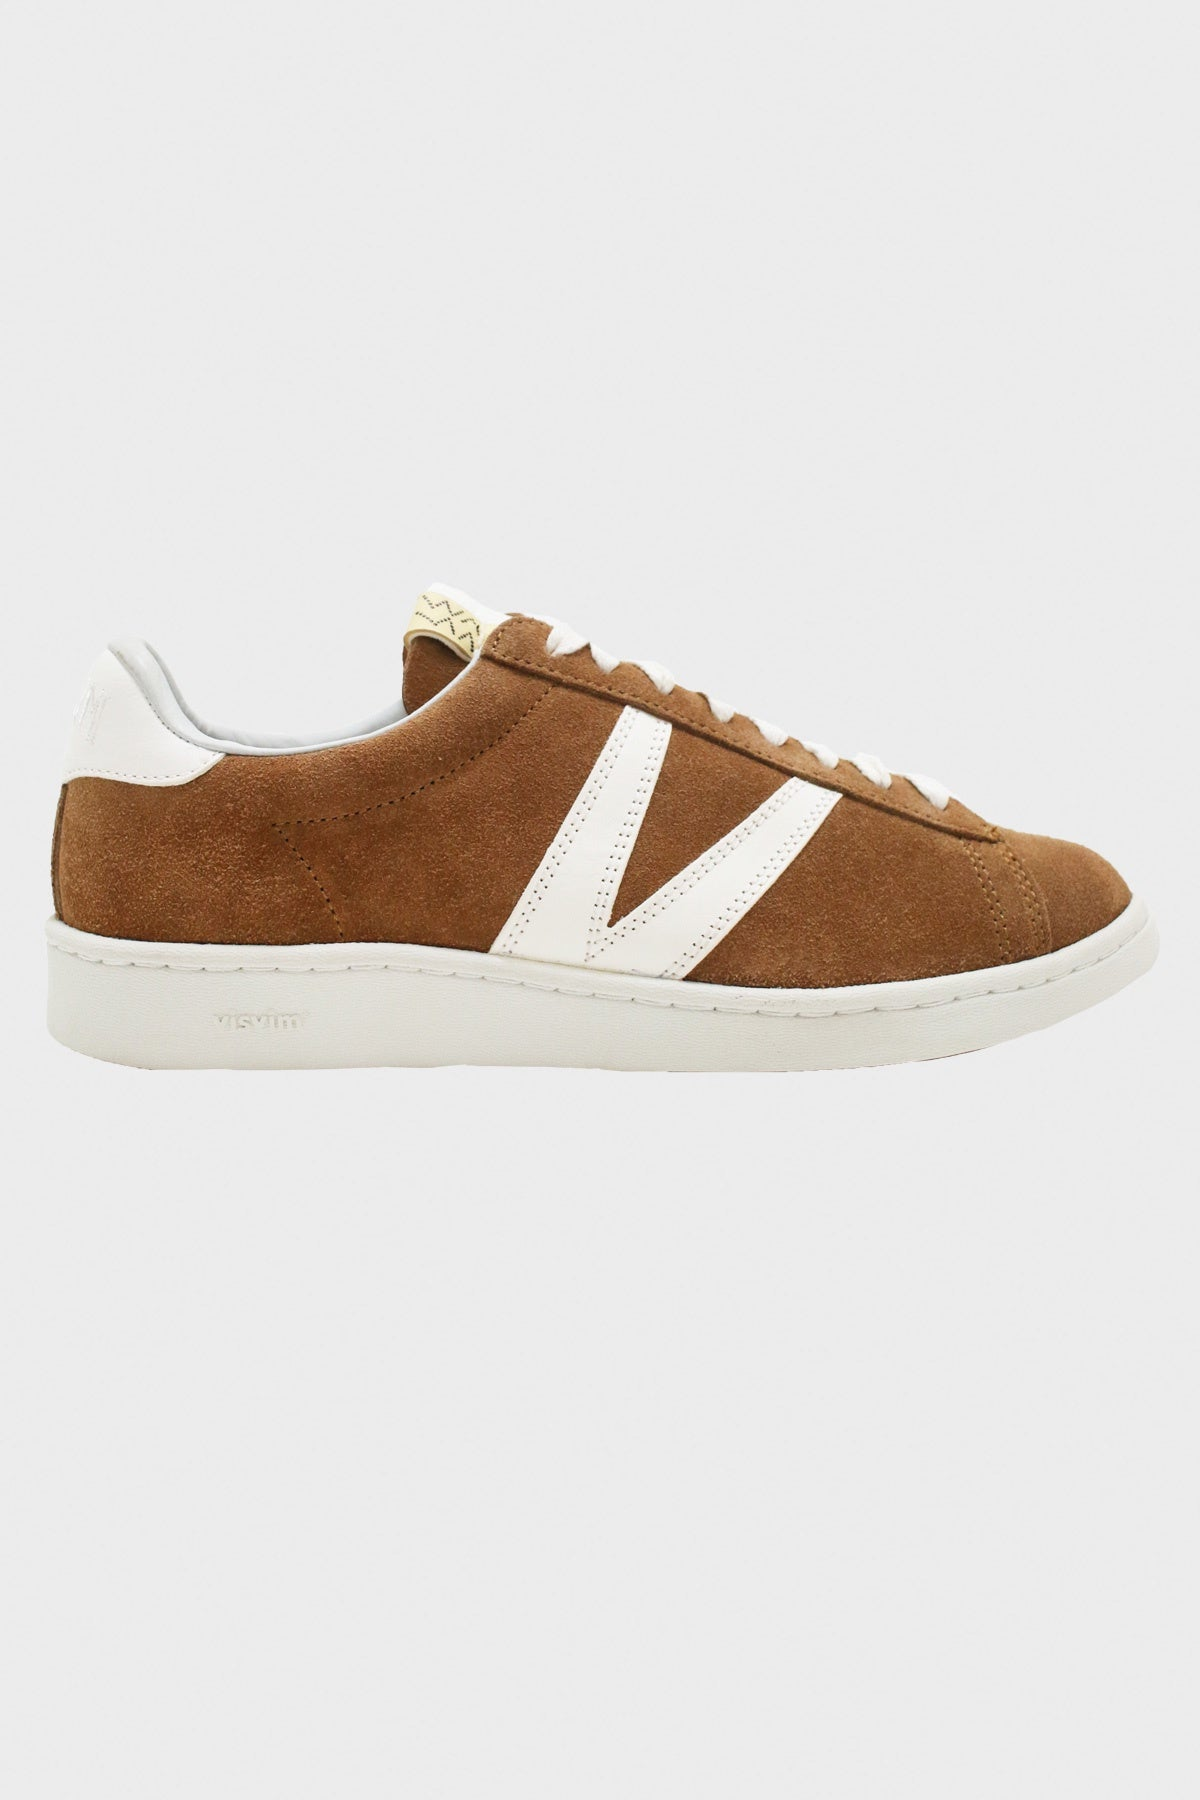 Visvim - Corda Folk - Light Brown - Canoe Club